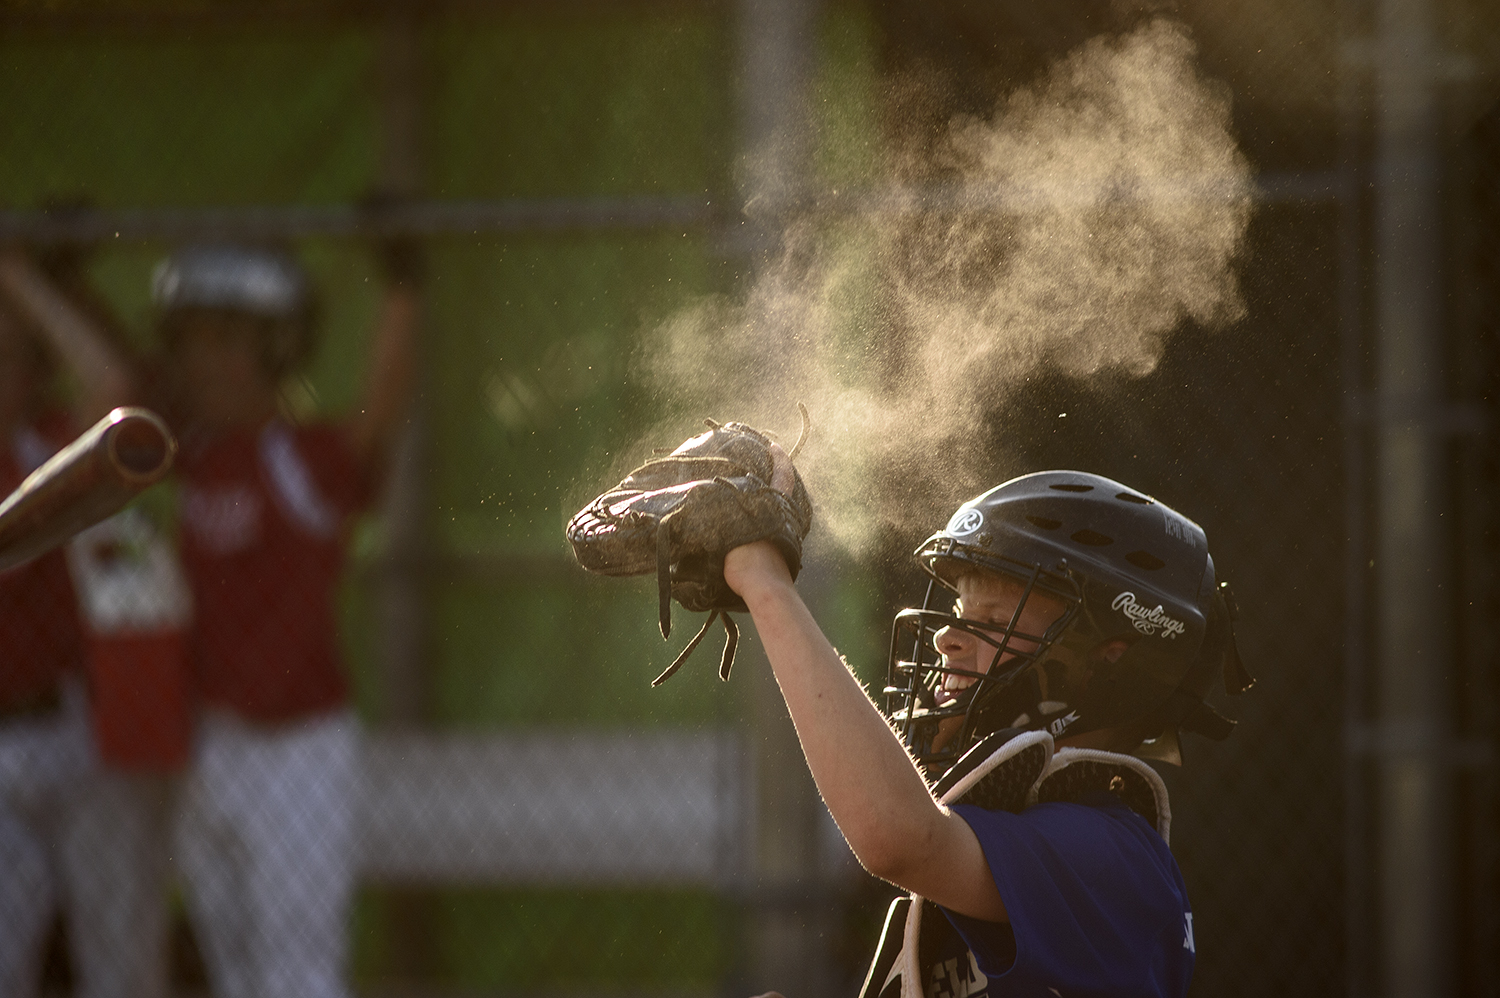 20160531MansfieldLittleLeague004415k.jpg